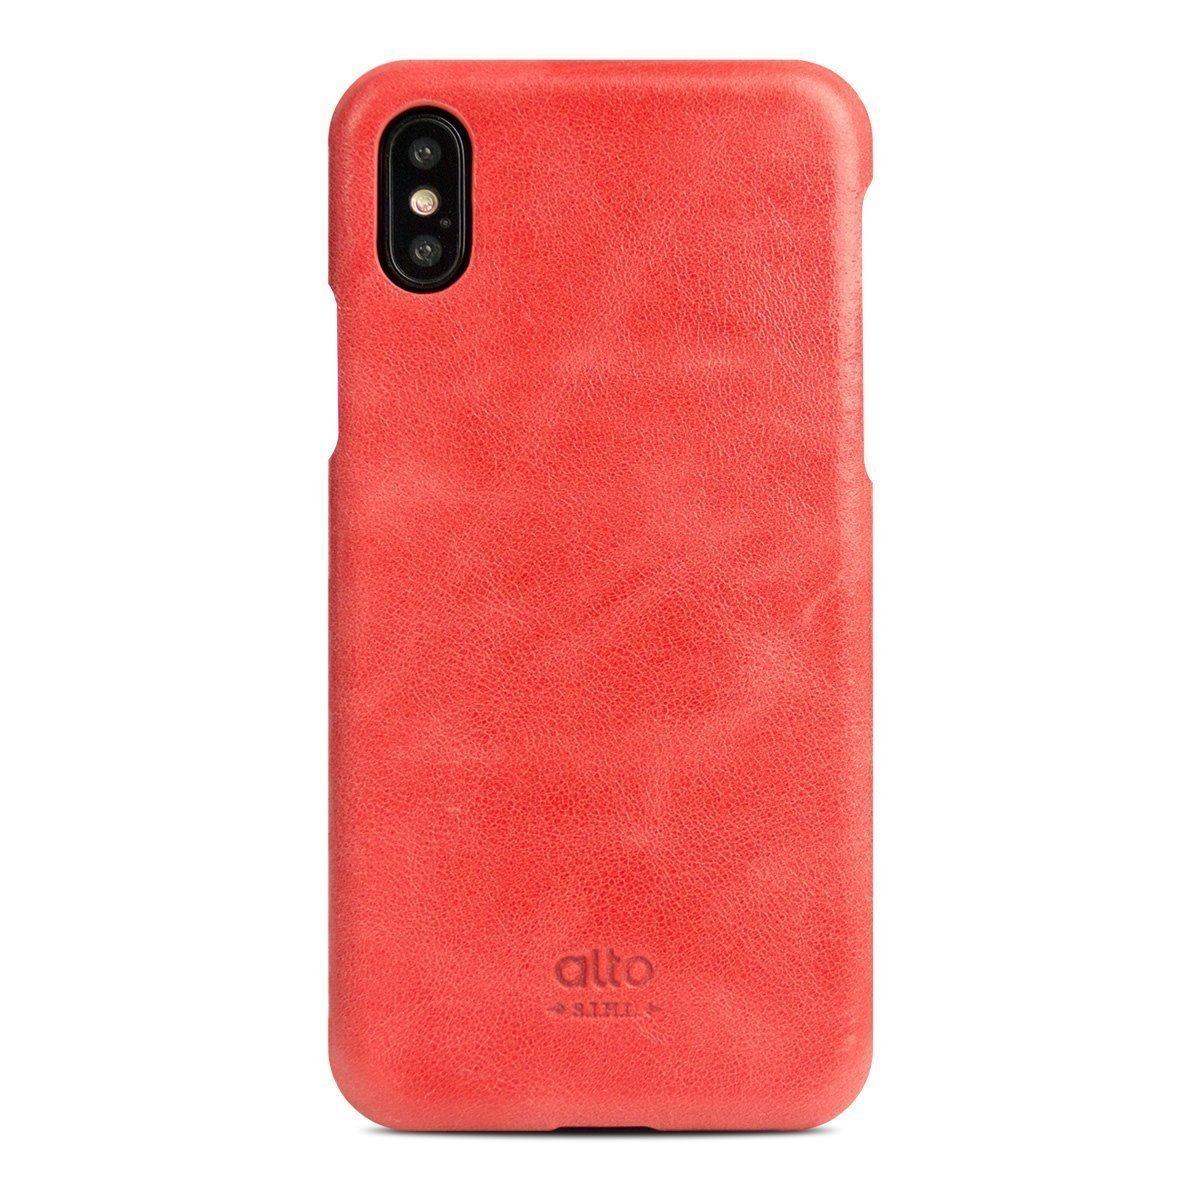 quality design 45fc3 23484 iPhone X/Xs Original Leather Case - Coral